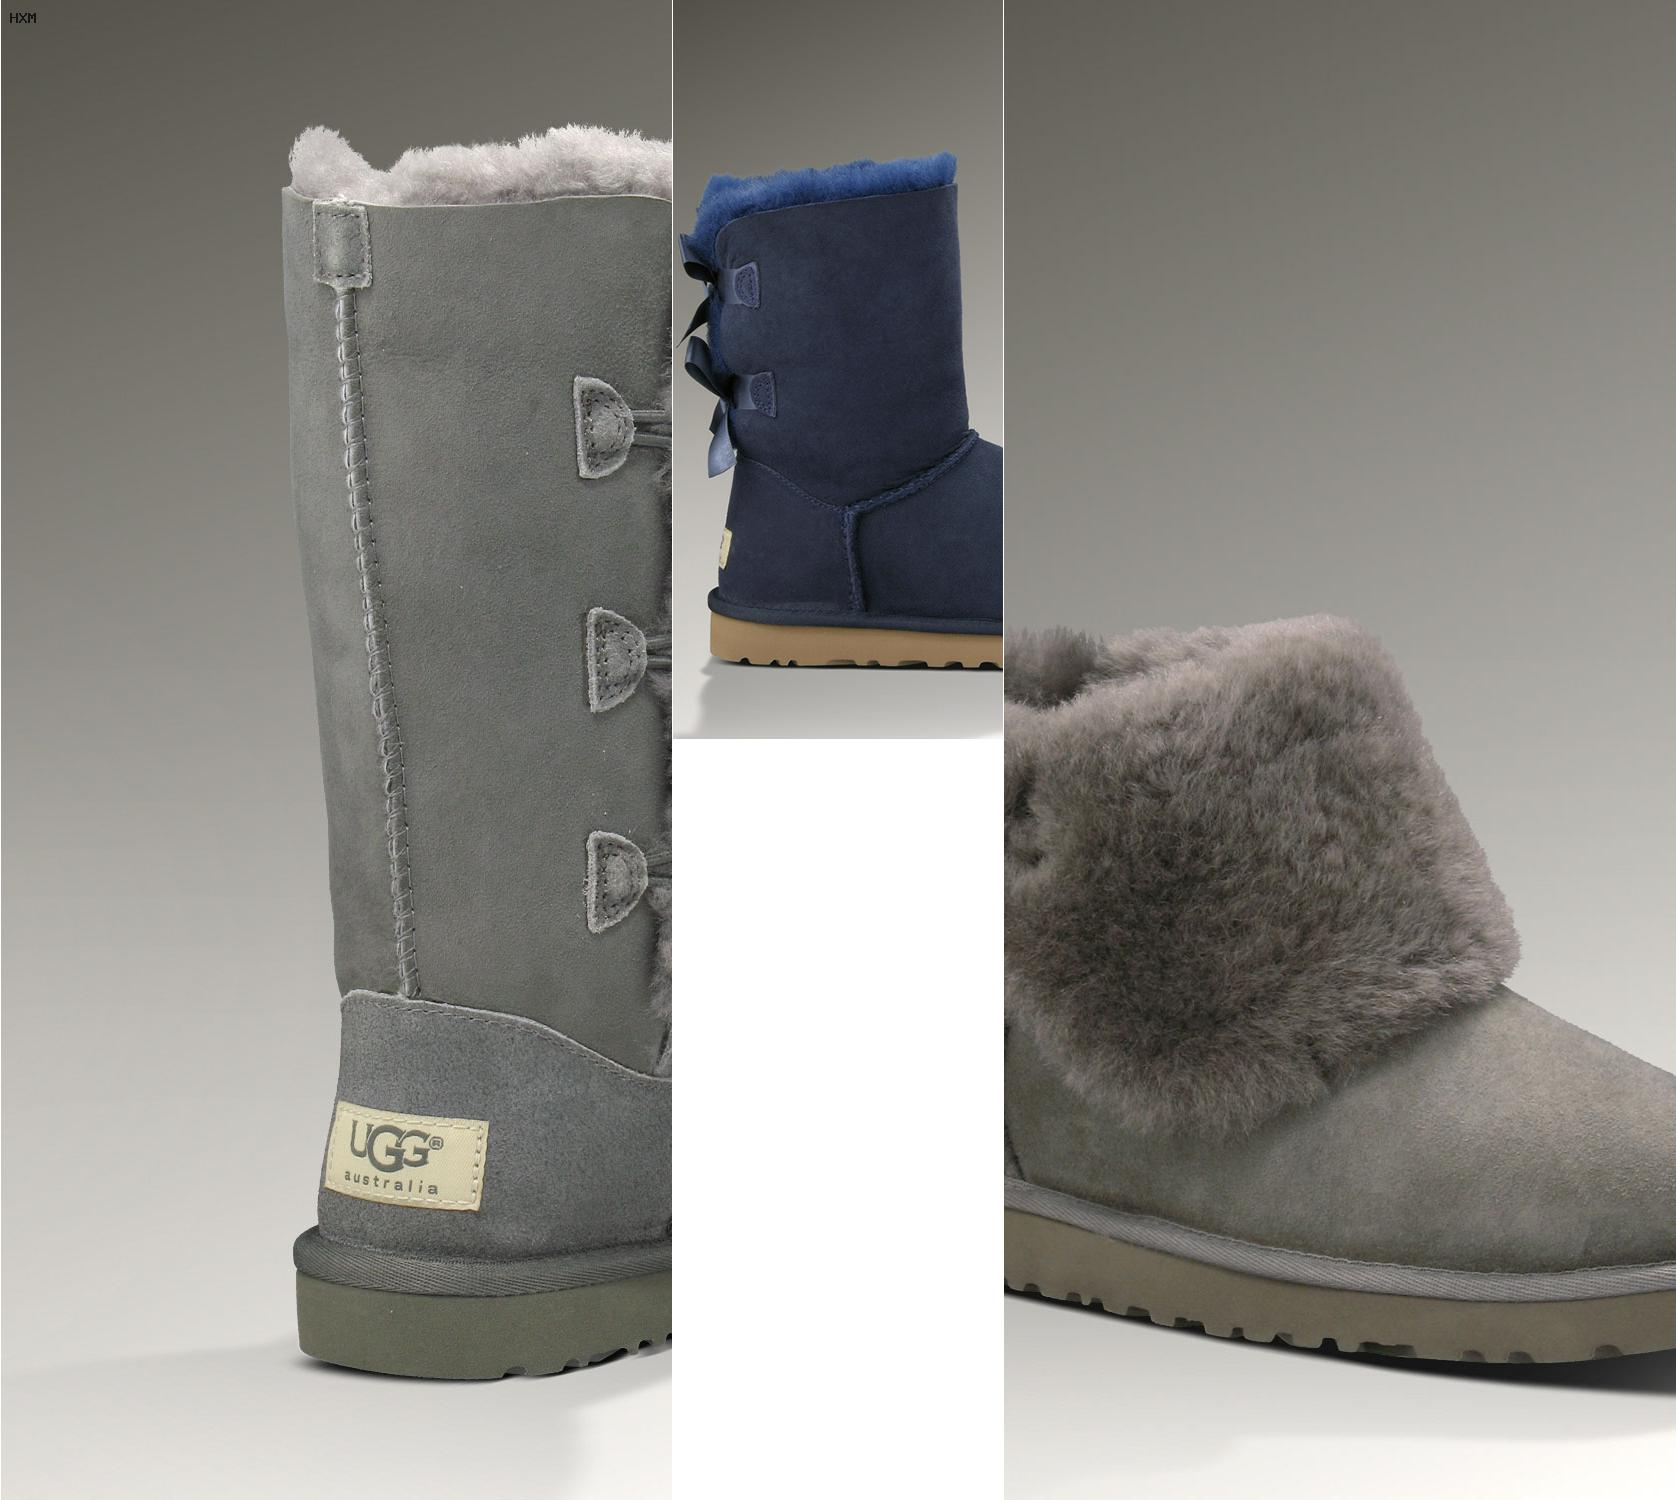 where can i buy ugg boots in france